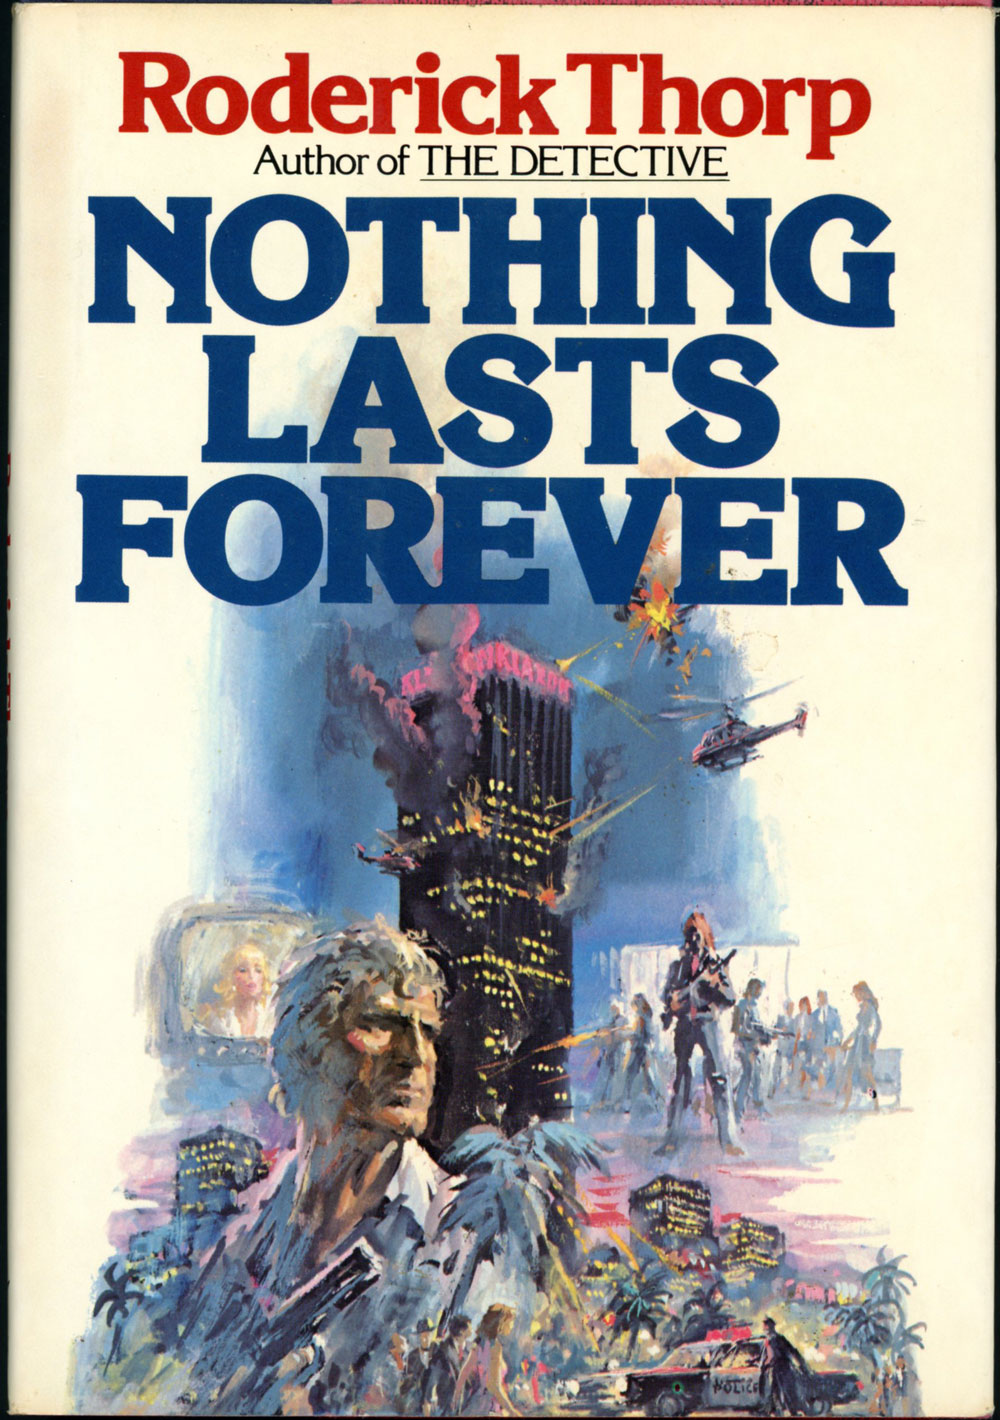 Book cover for Roderick Thorpe's Nothing Lasts Forever in the South Manchester, Chorlton, and Didsbury book group